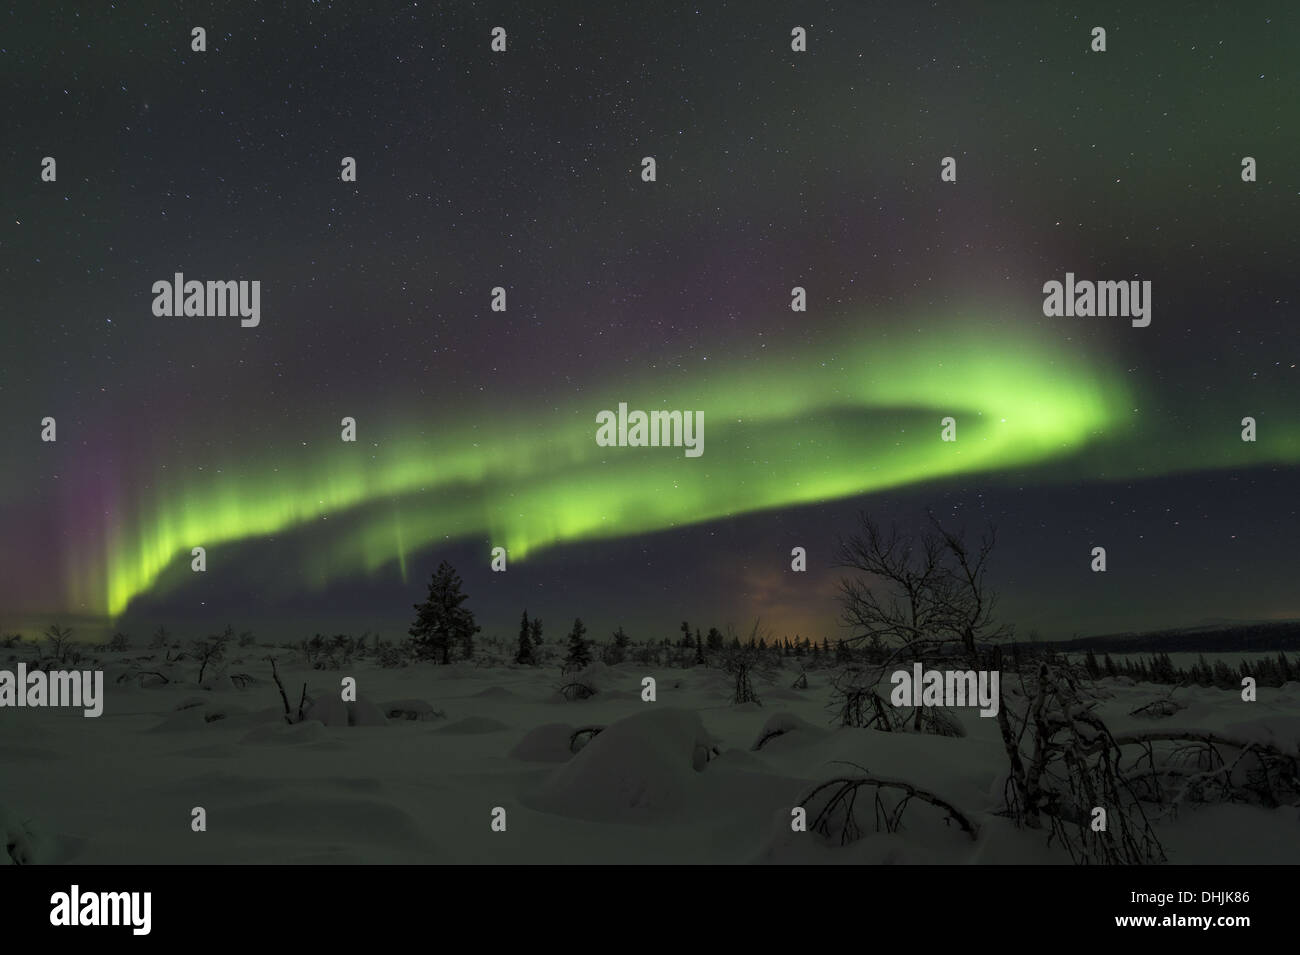 Northern lights (Aurora borealis), Sweden - Stock Image